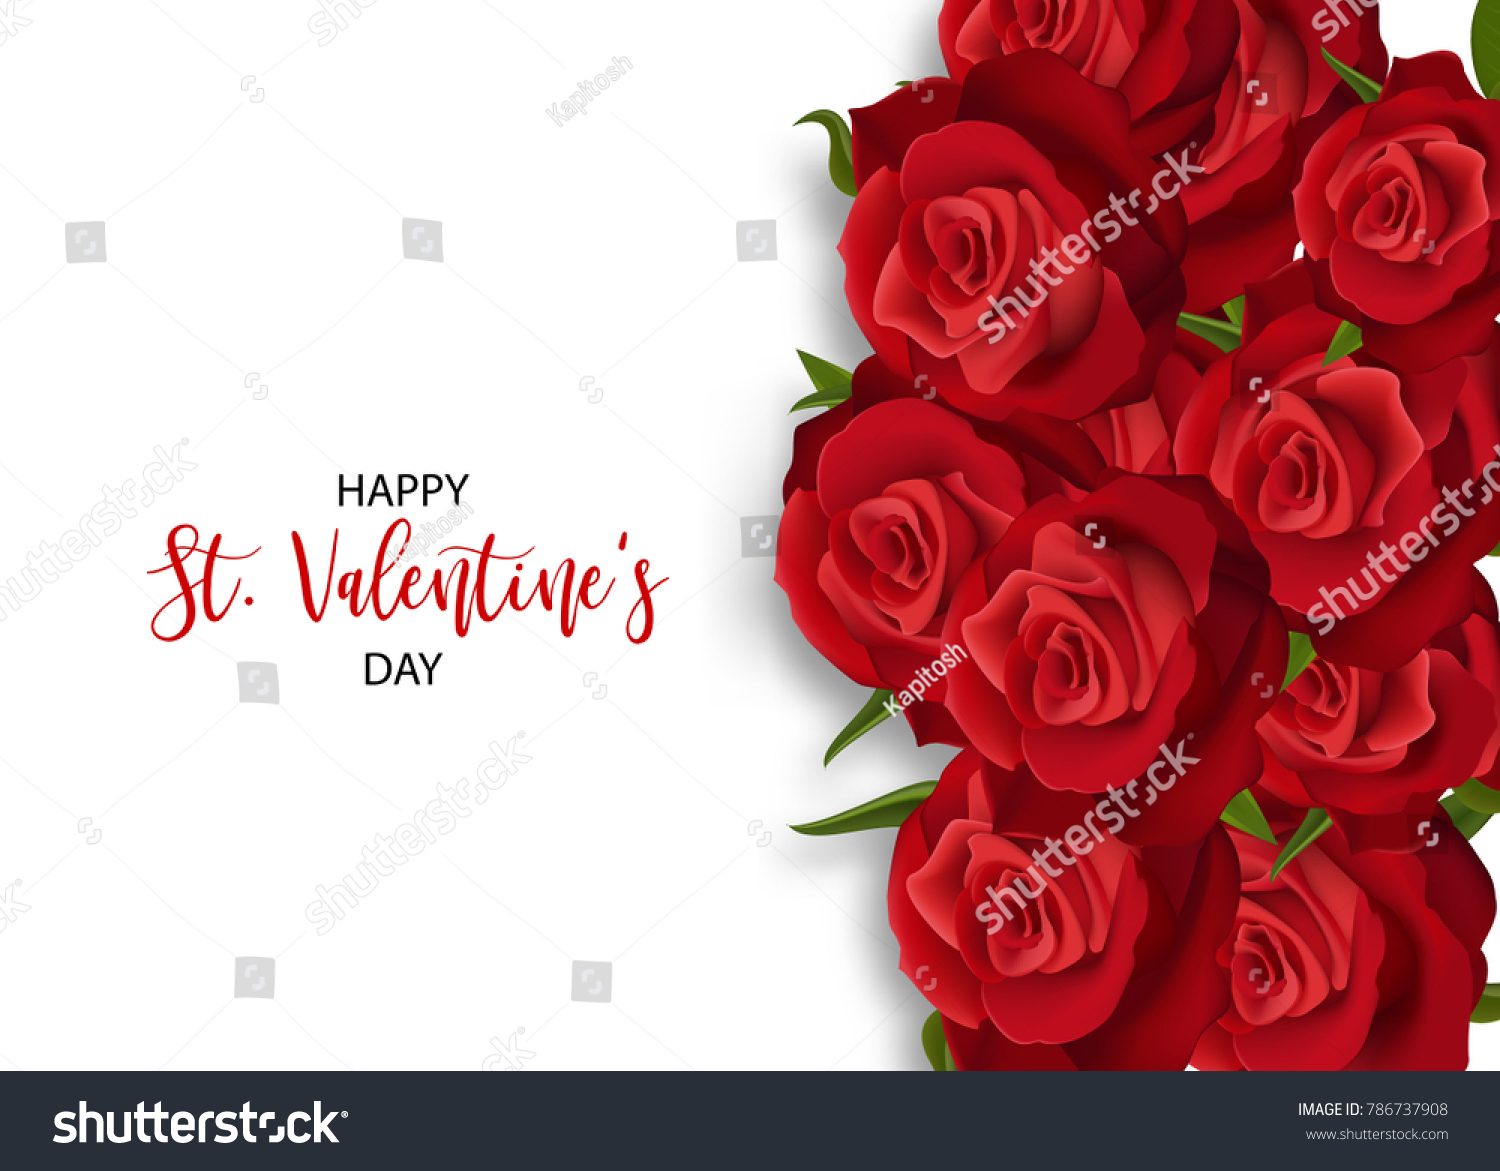 Love flower bouquet valentines banner frame stock vector royalty love flower bouquet valentines banner frame beautiful holiday roses blossom invitation vector colored illustration izmirmasajfo